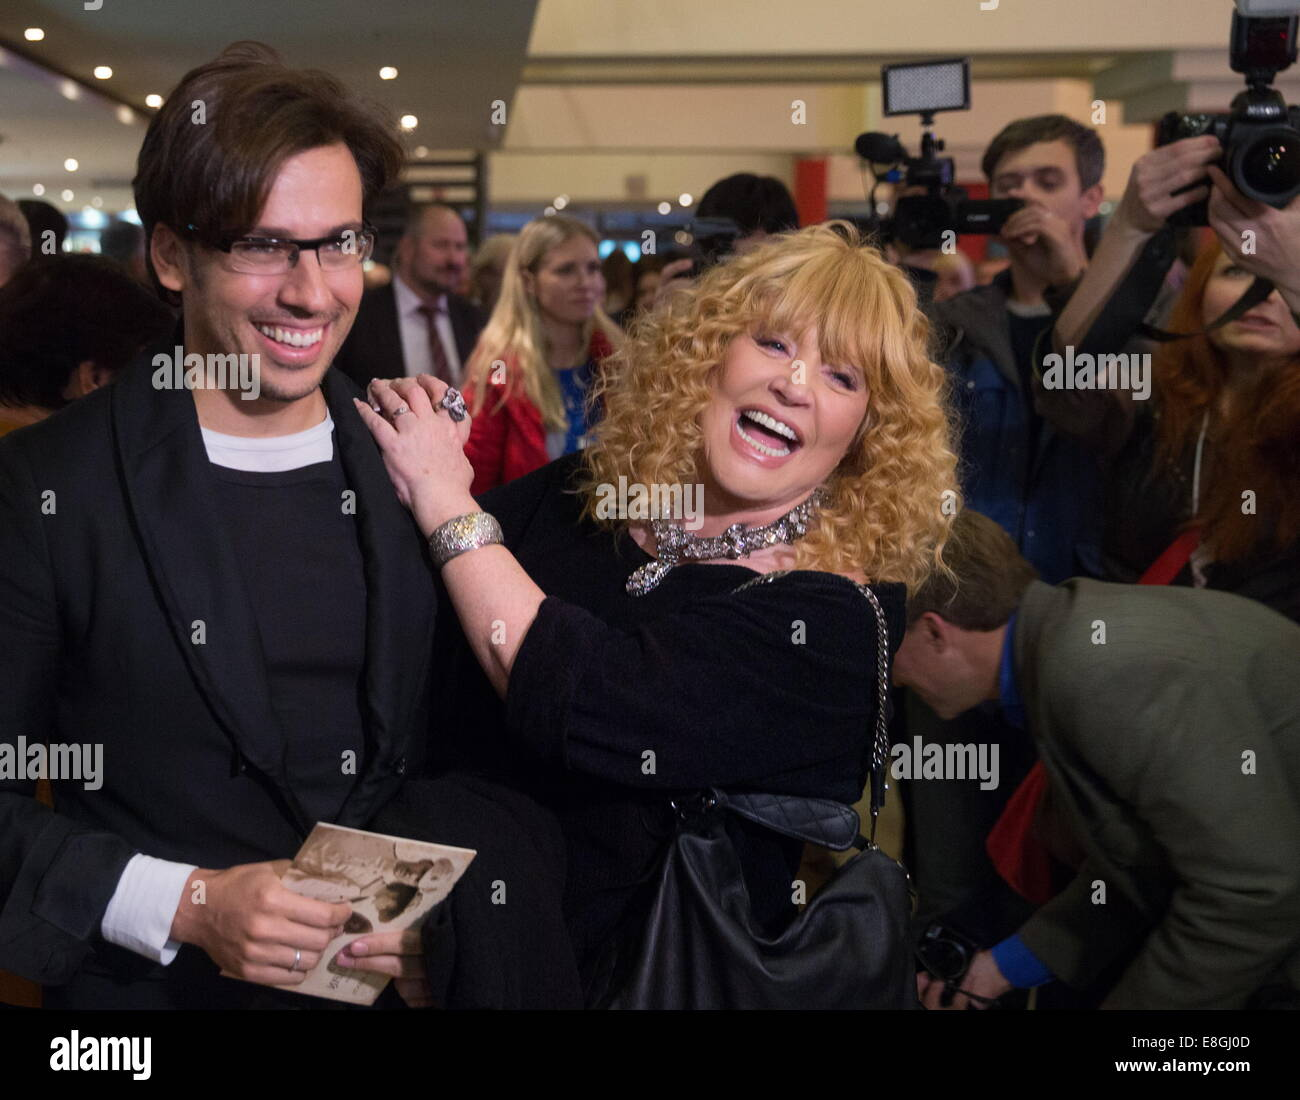 Alla Pugacheva and Maxim Galkin named their son after a fairytale character 12/16/2013 31